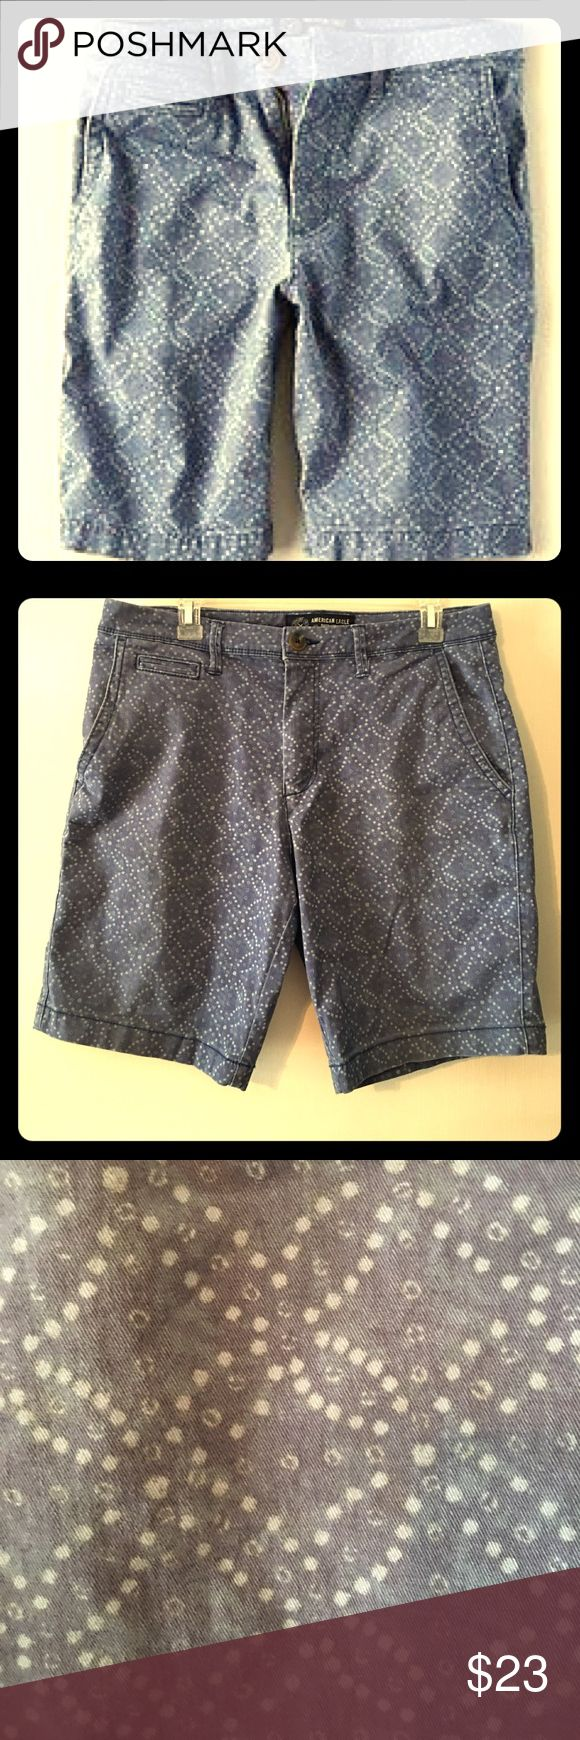 American Eagle active flex slim men's print short Very soft, and stretches. In excellent preowned condition. Size 32                                                Accepting reasonable offers!                                     Don't forget to take a look at my closet for other items and receive a bundling discount! American Eagle Outfitters Shorts Flat Front